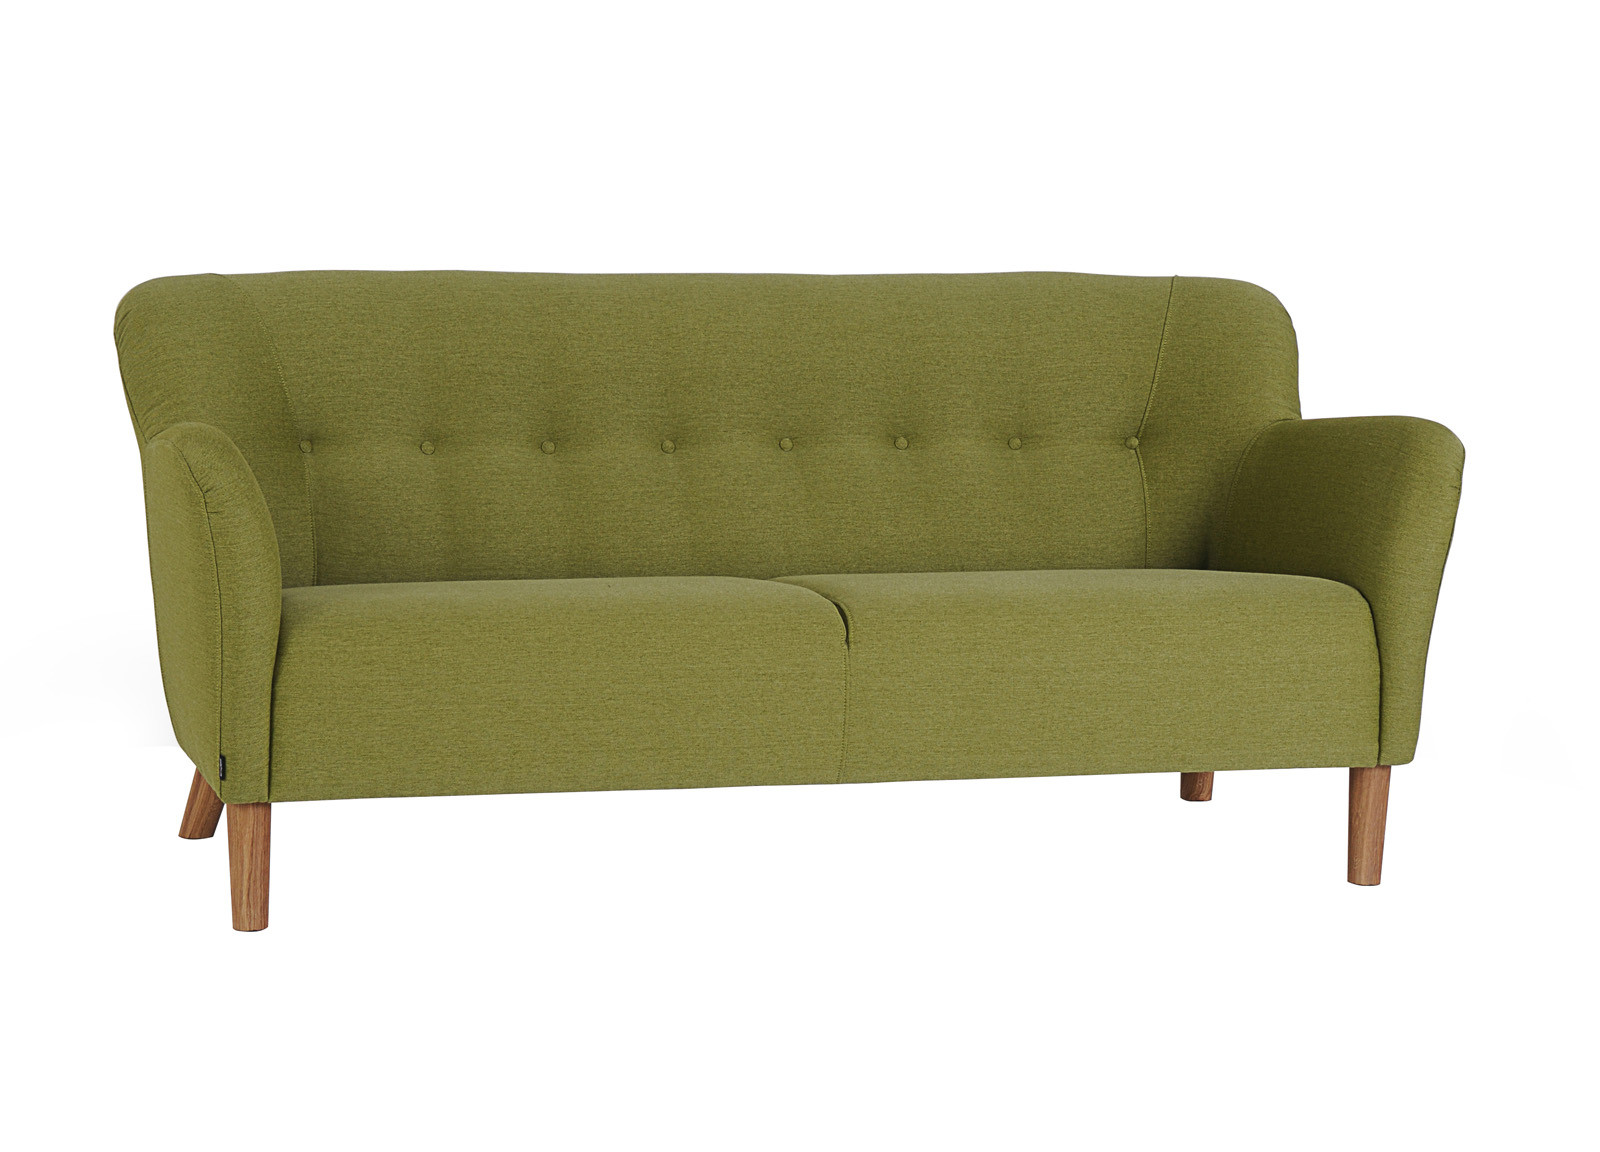 carolina sofaen er fin 3 personers sofa i retro stil med runde former. Black Bedroom Furniture Sets. Home Design Ideas